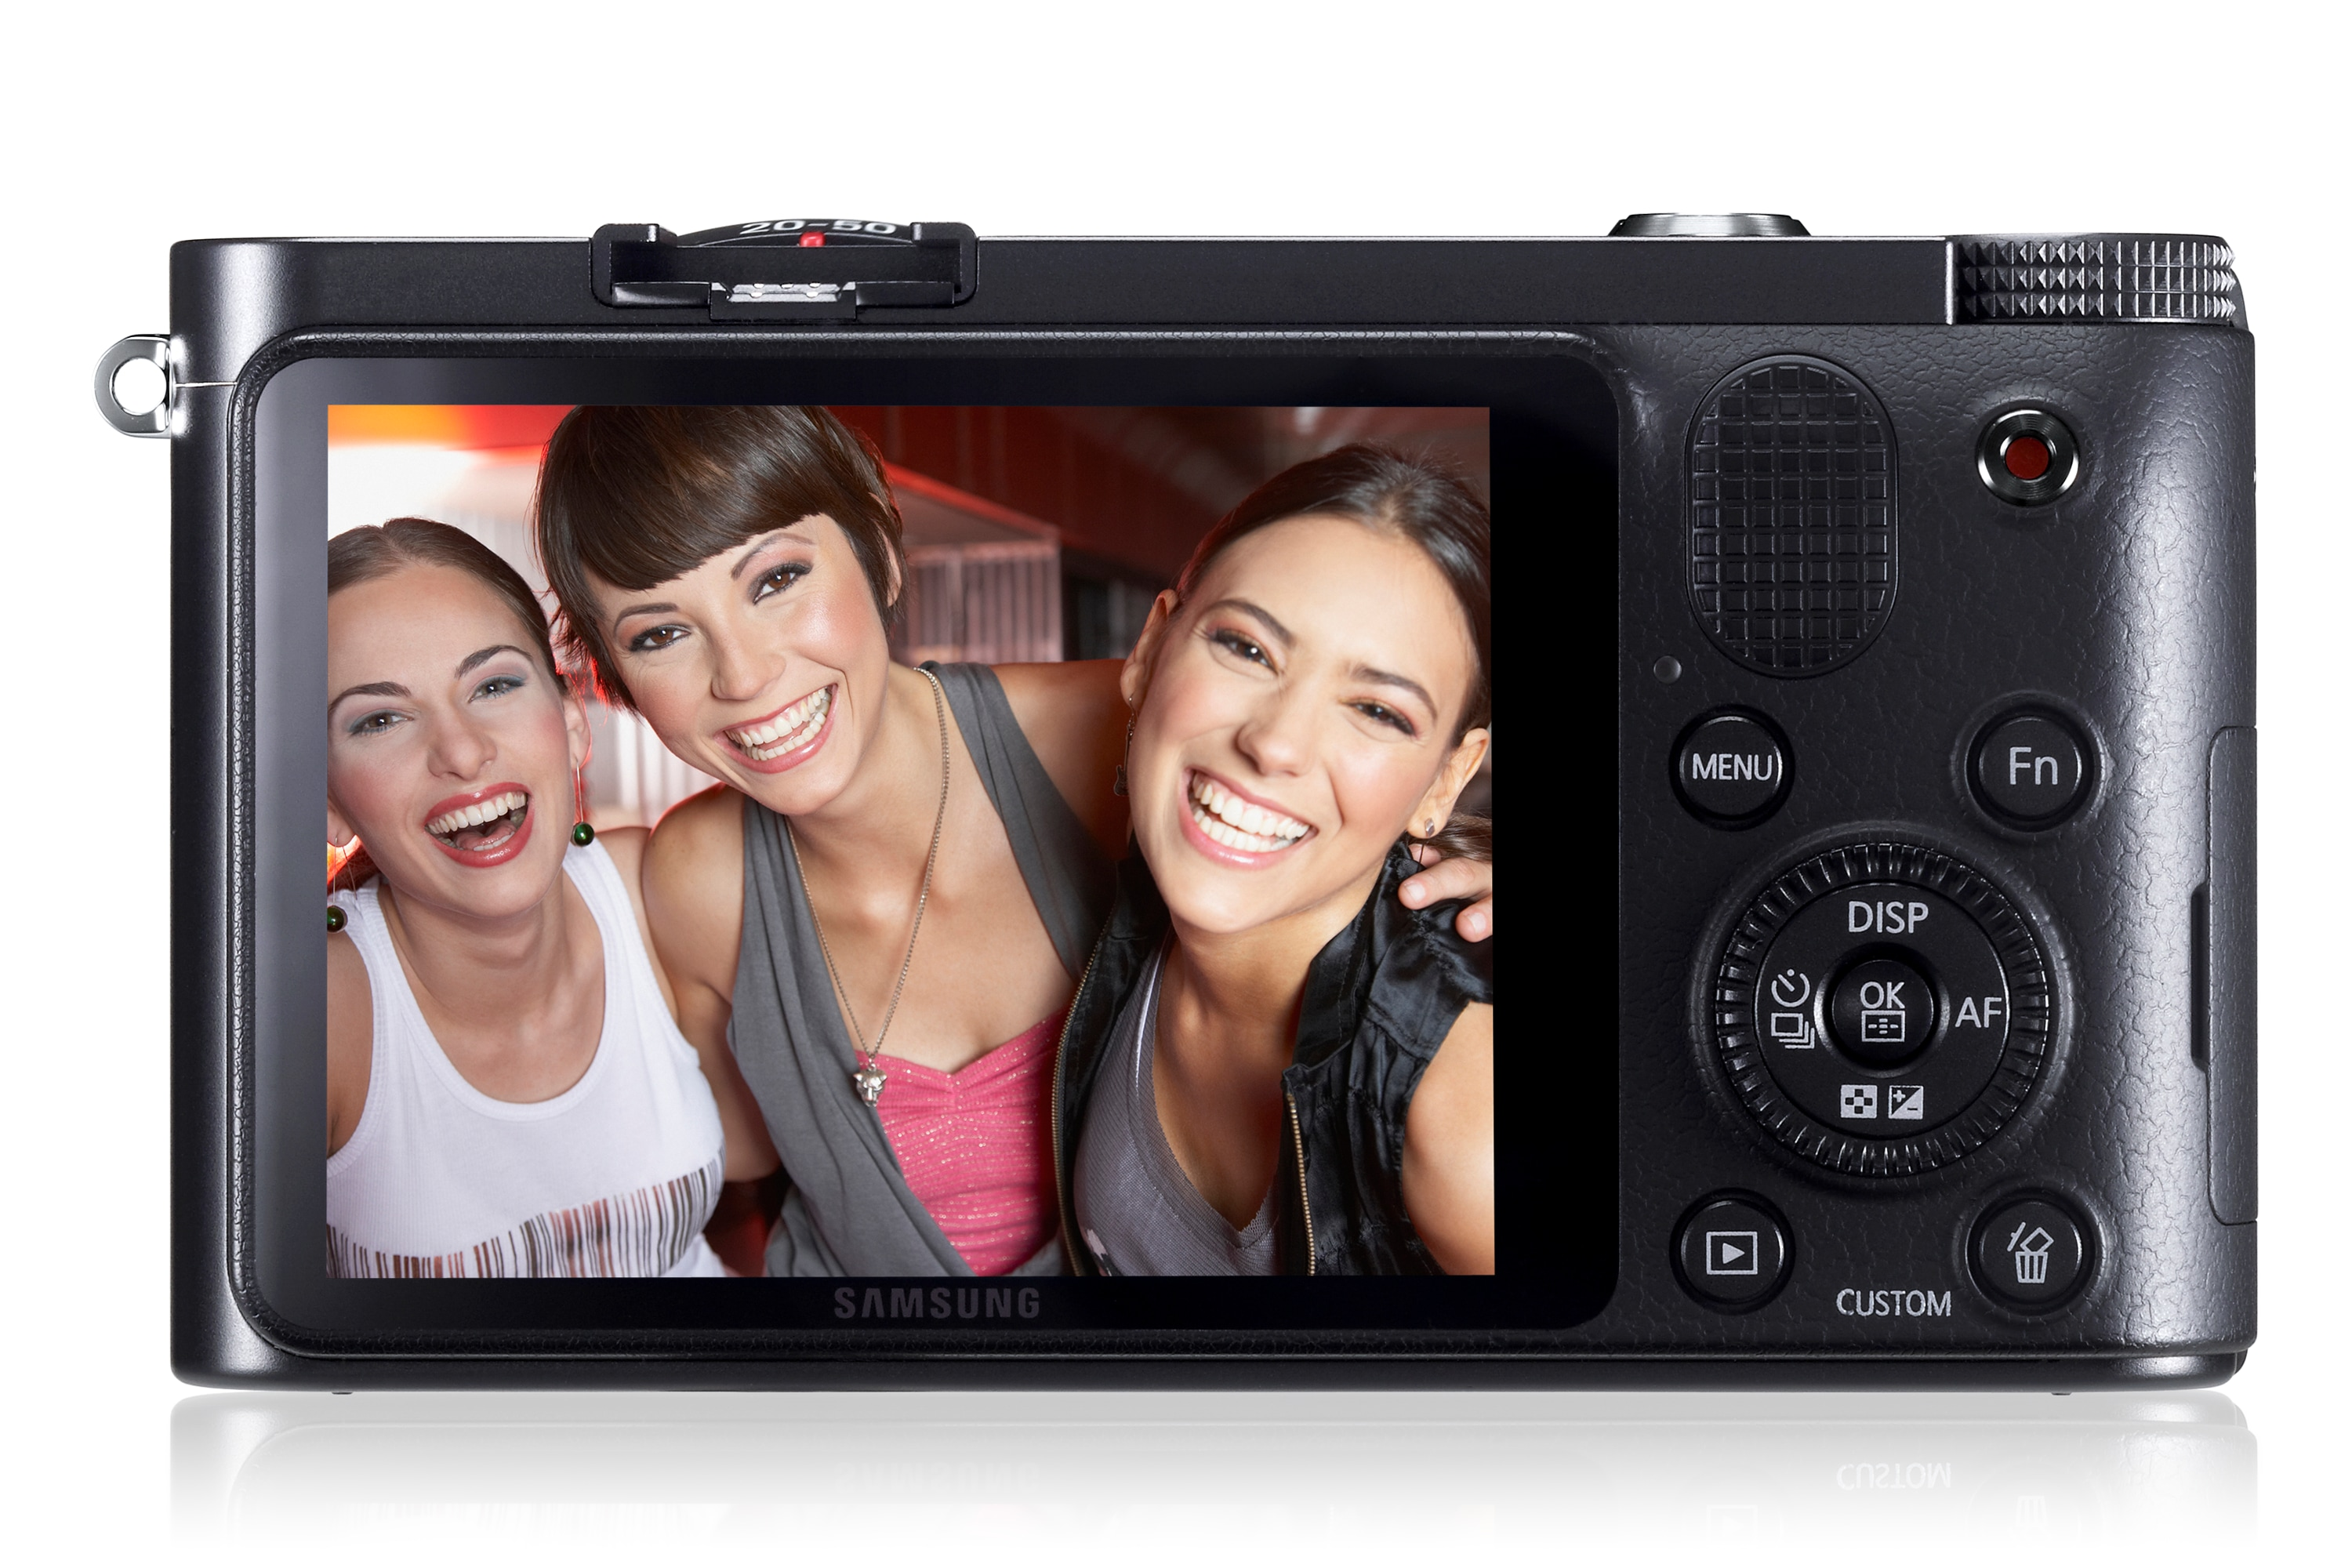 NX1000 20.3MP Digital Camera Dynamic Back